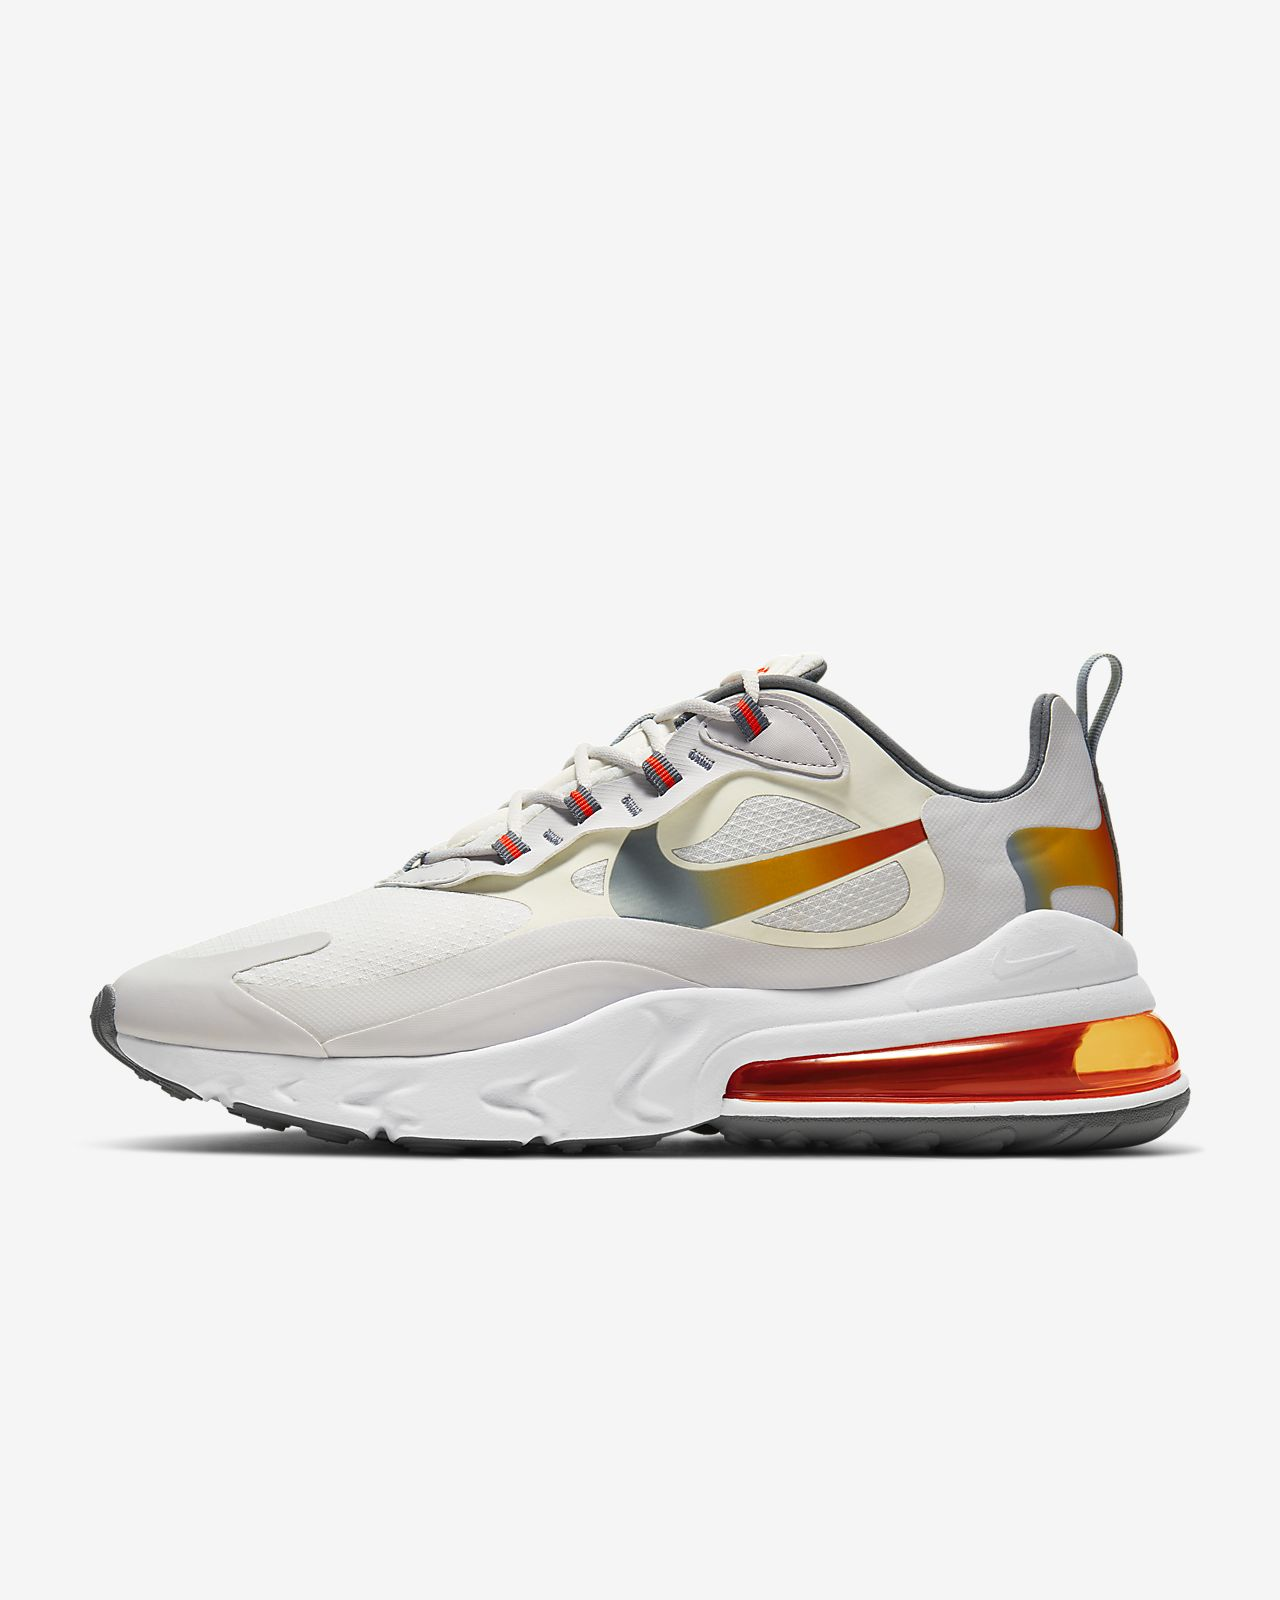 white and gray air max 270